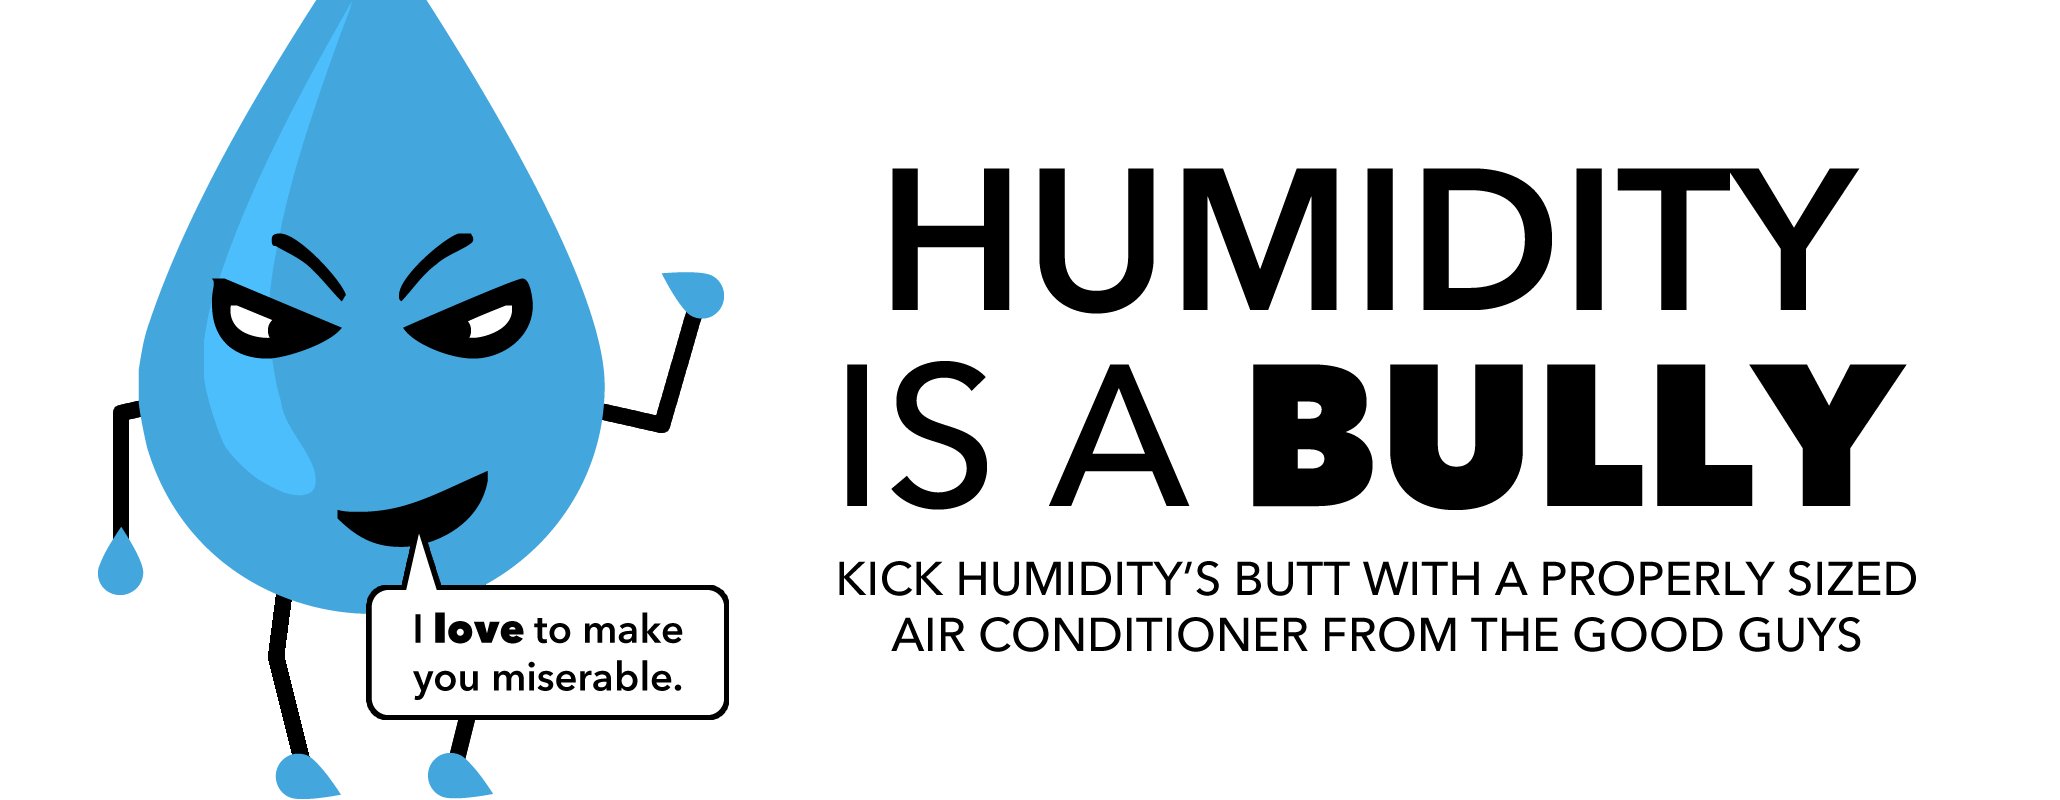 Humidity is a Bully. Kick humidity's butt with a properly sized Air Conditioner from the Good Guys!